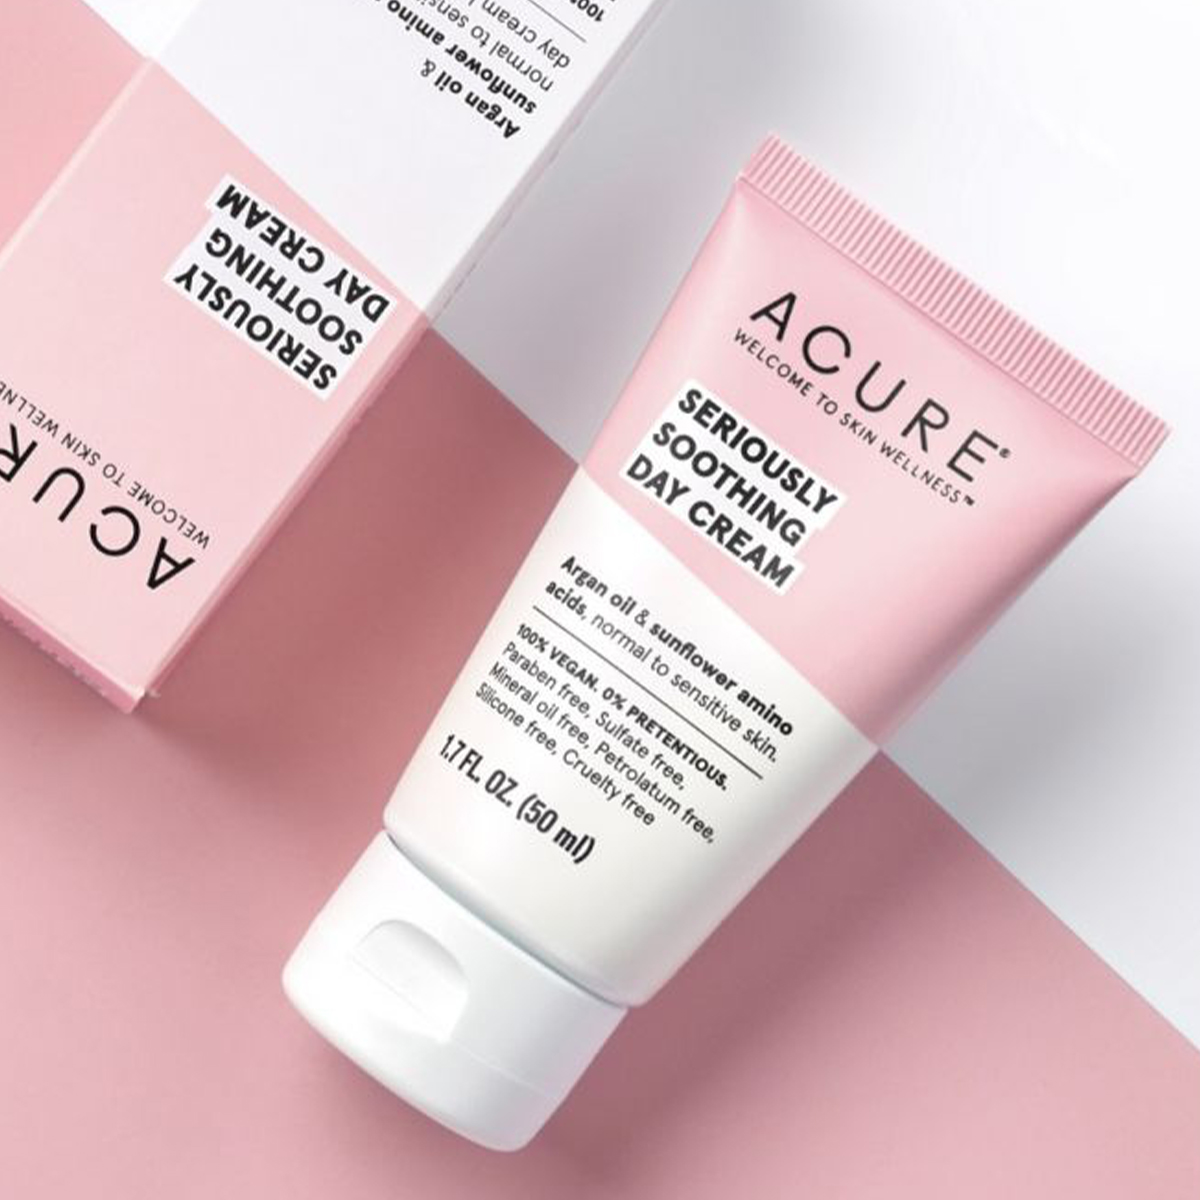 a tube of Acure cream on a pink and white background